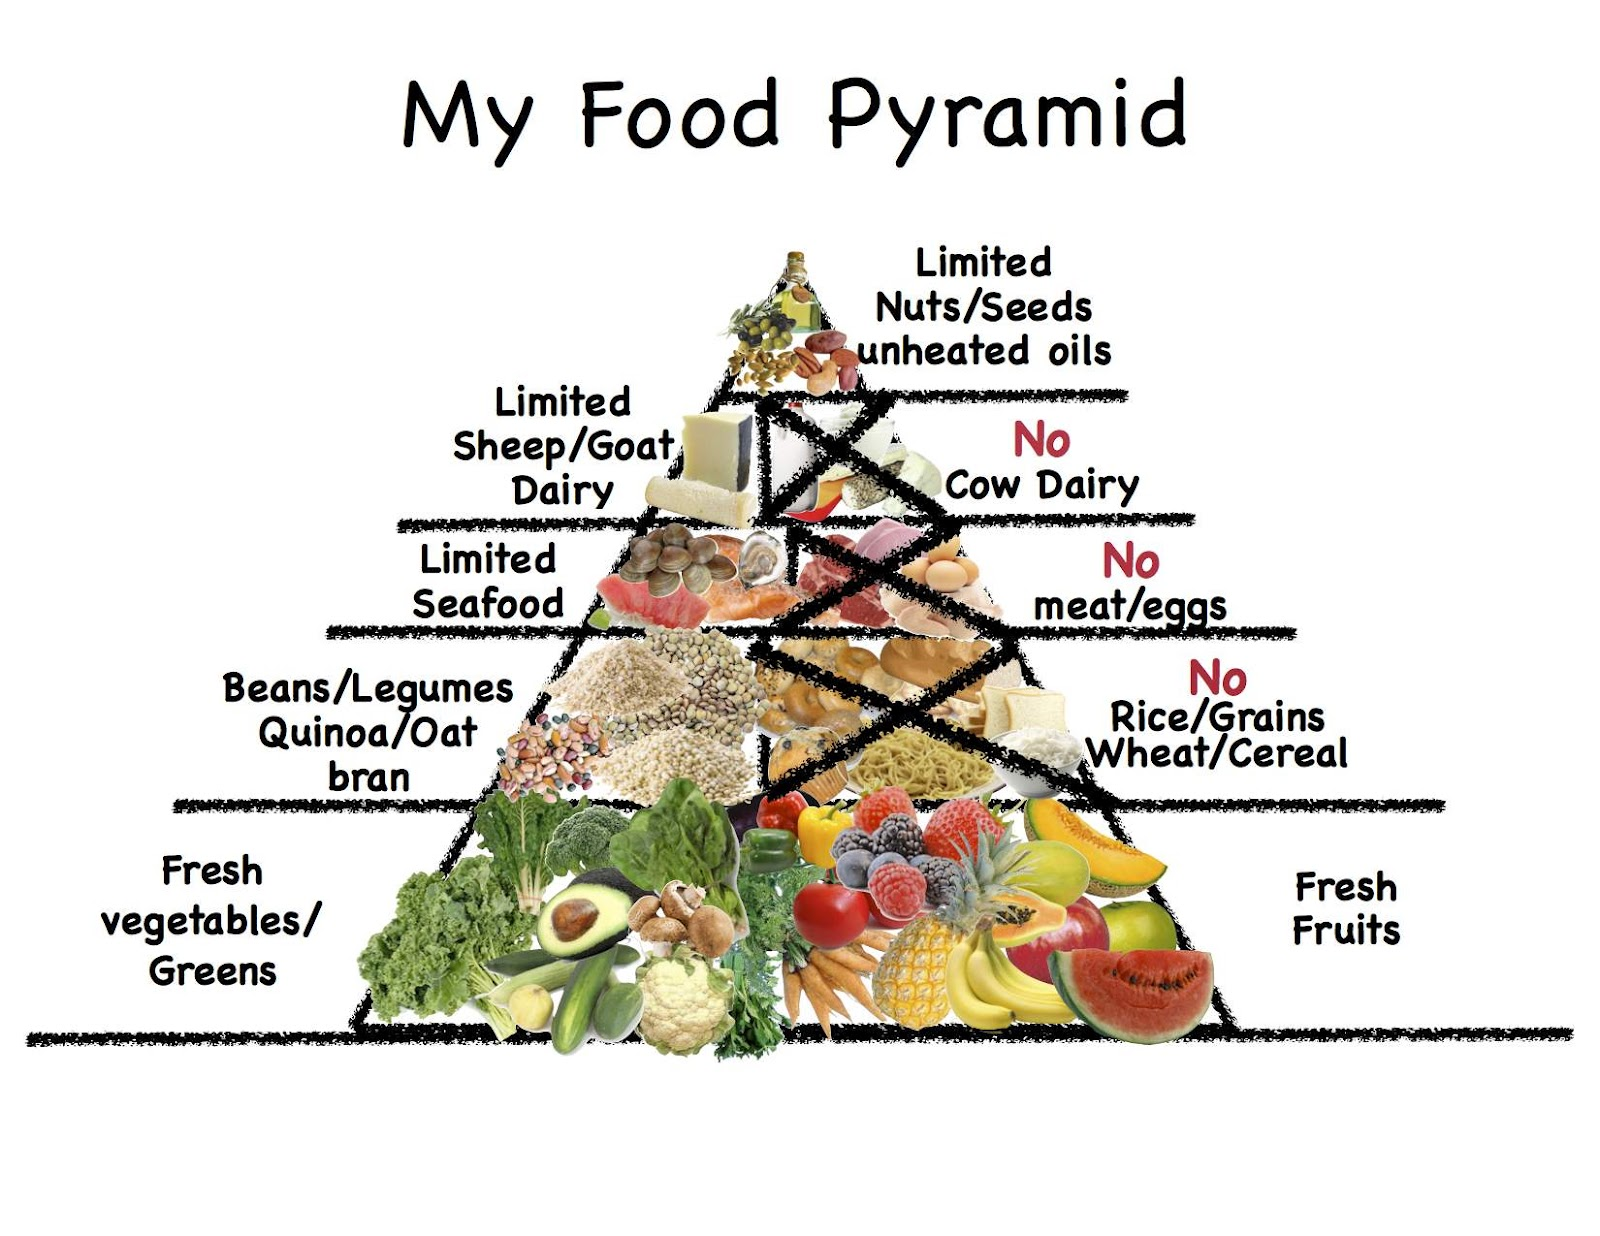 Chef Solus shares some important information about each of the food groups of the food pyramid